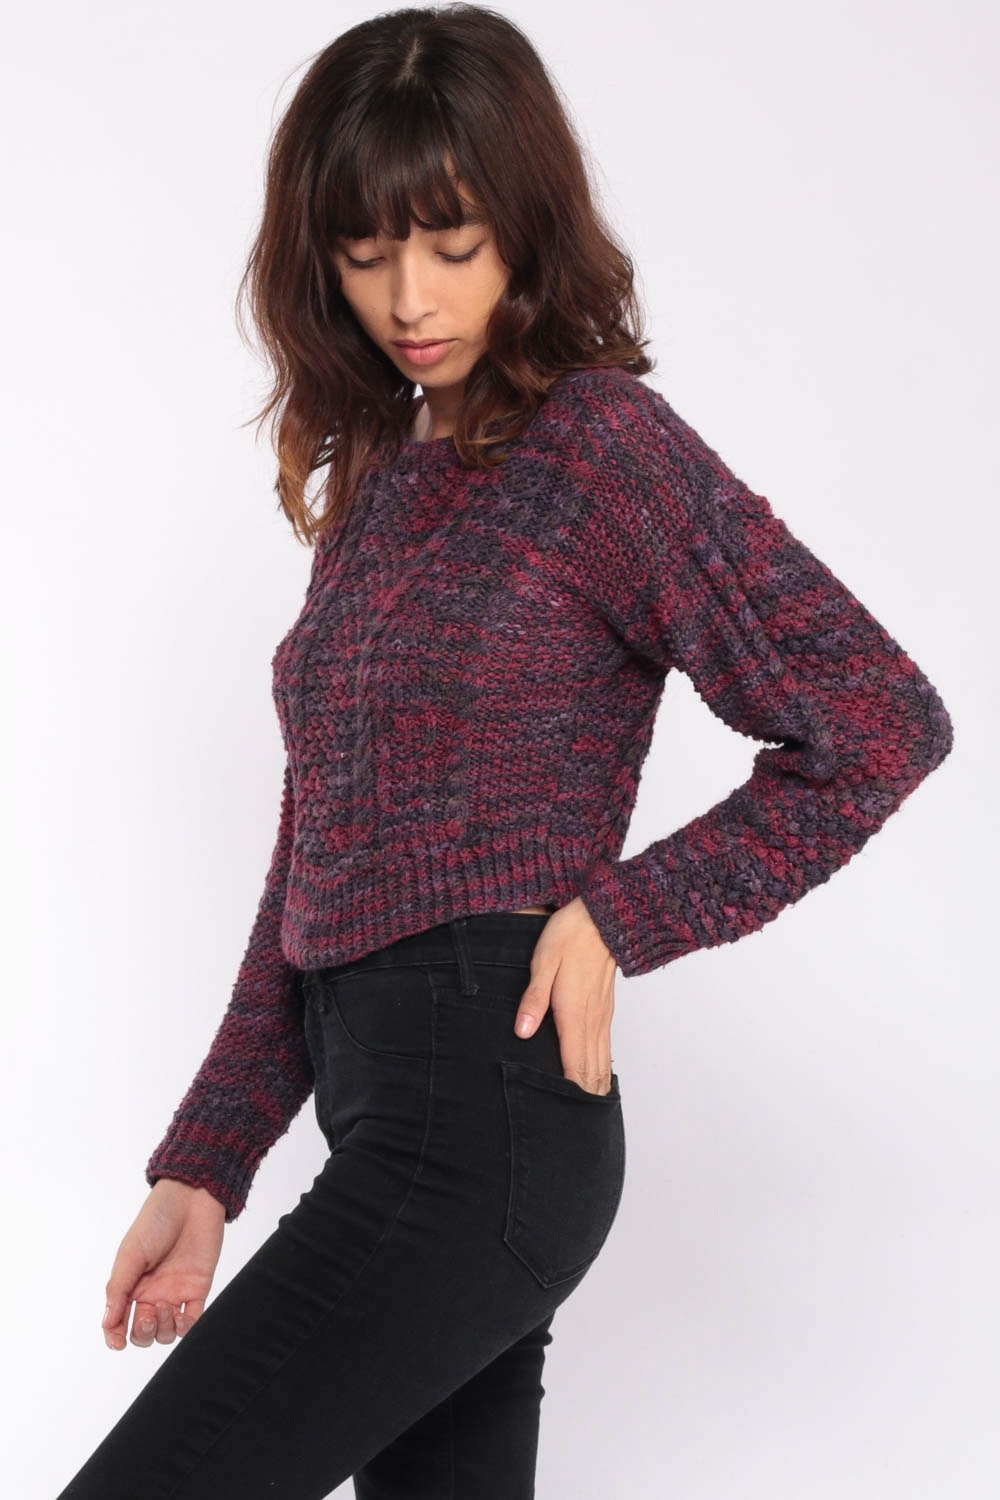 cropped sweater 90s cable knit purple grey 1990s sweater